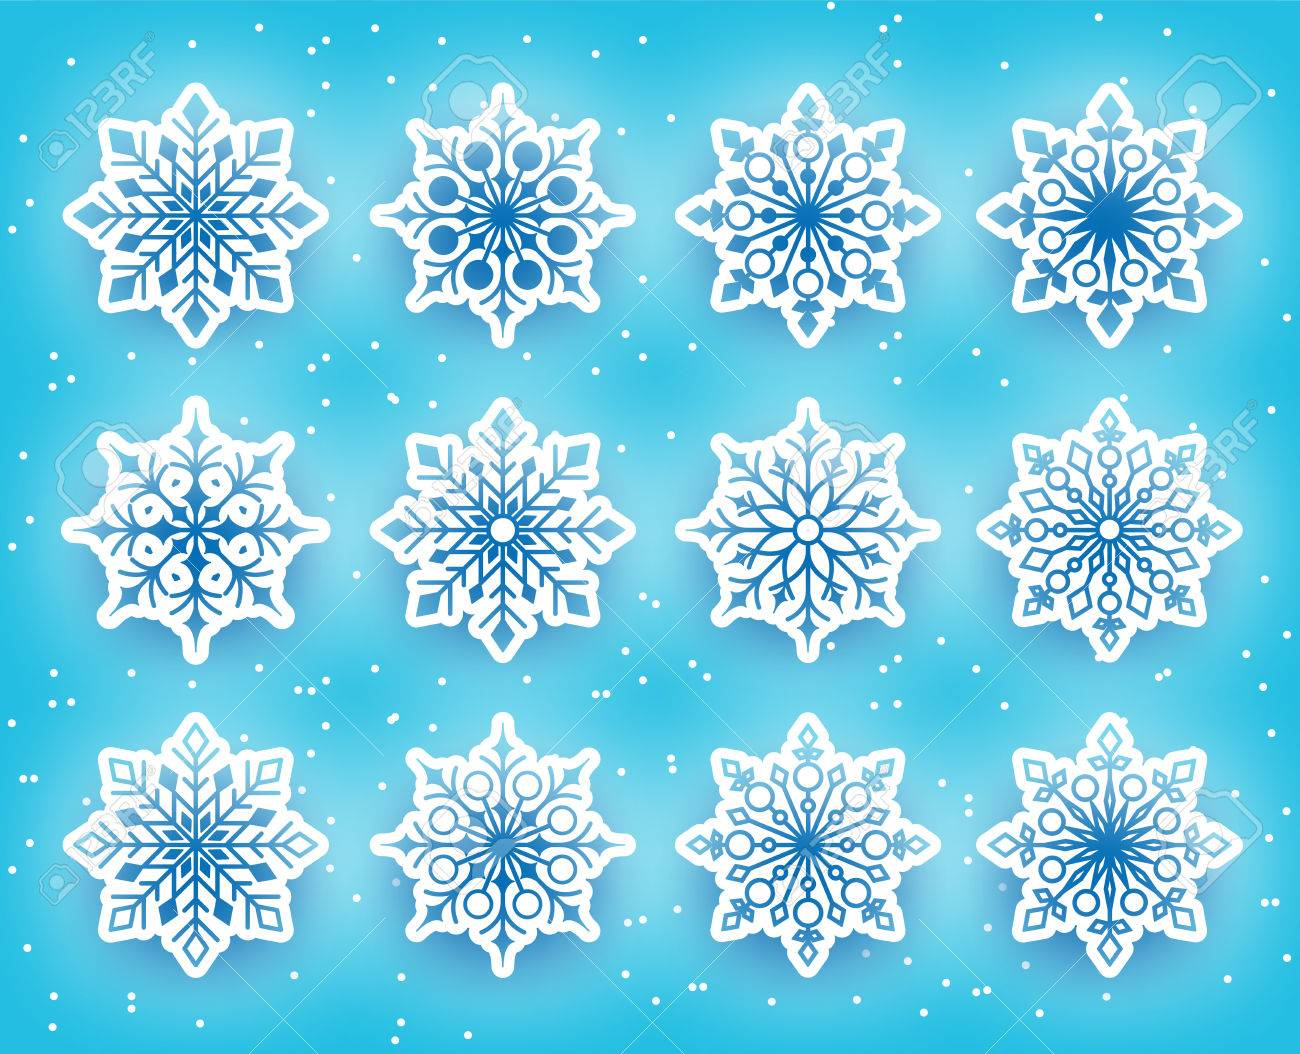 Beautiful Snowflakes Set for Winter Season in Snowy Background. Vector Illustration - 47108728